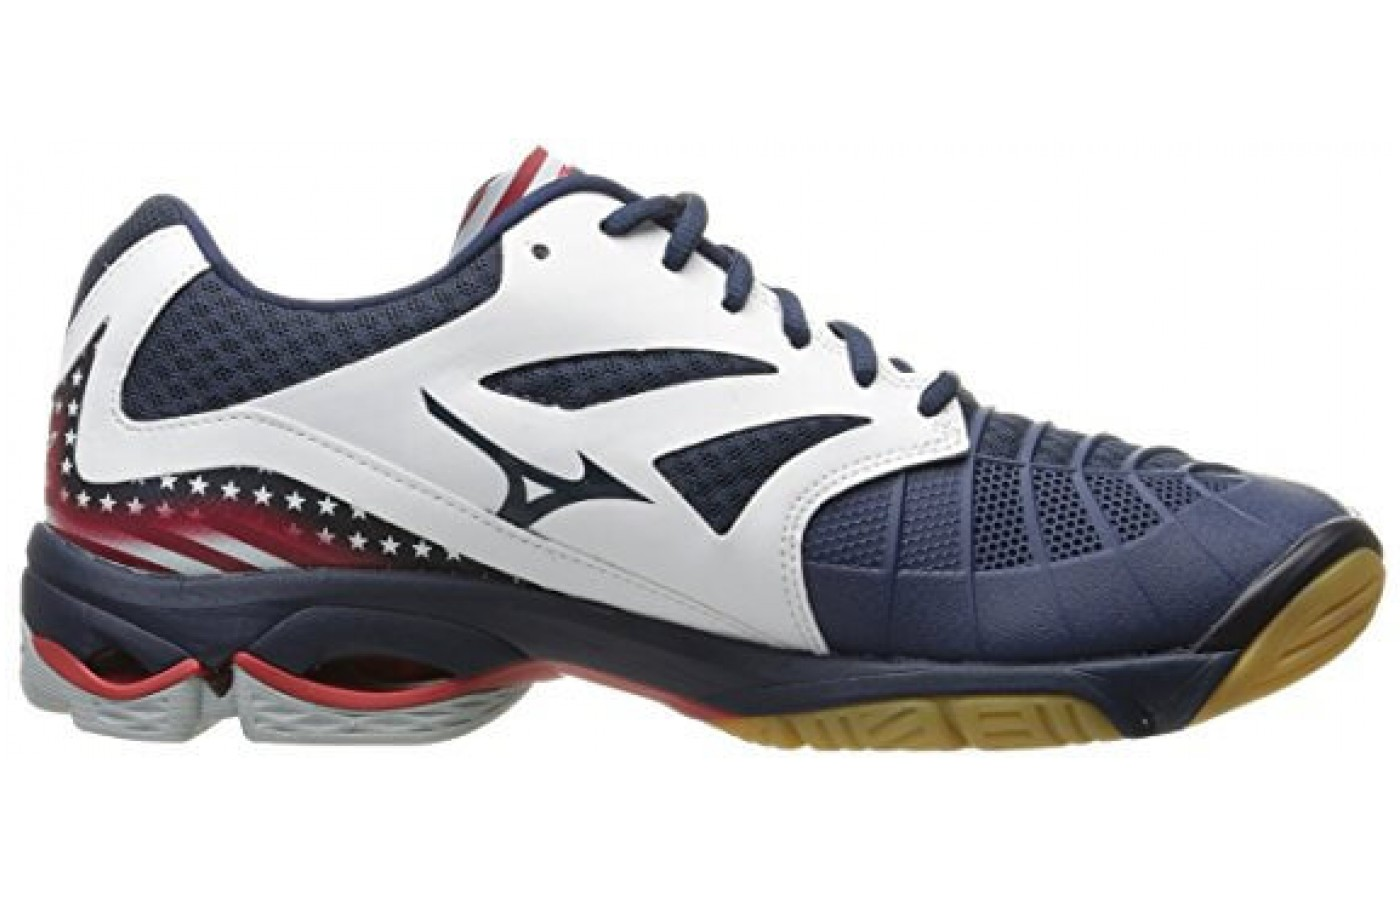 The Mizuno Wave Lightning Z3 is extremely lightweight